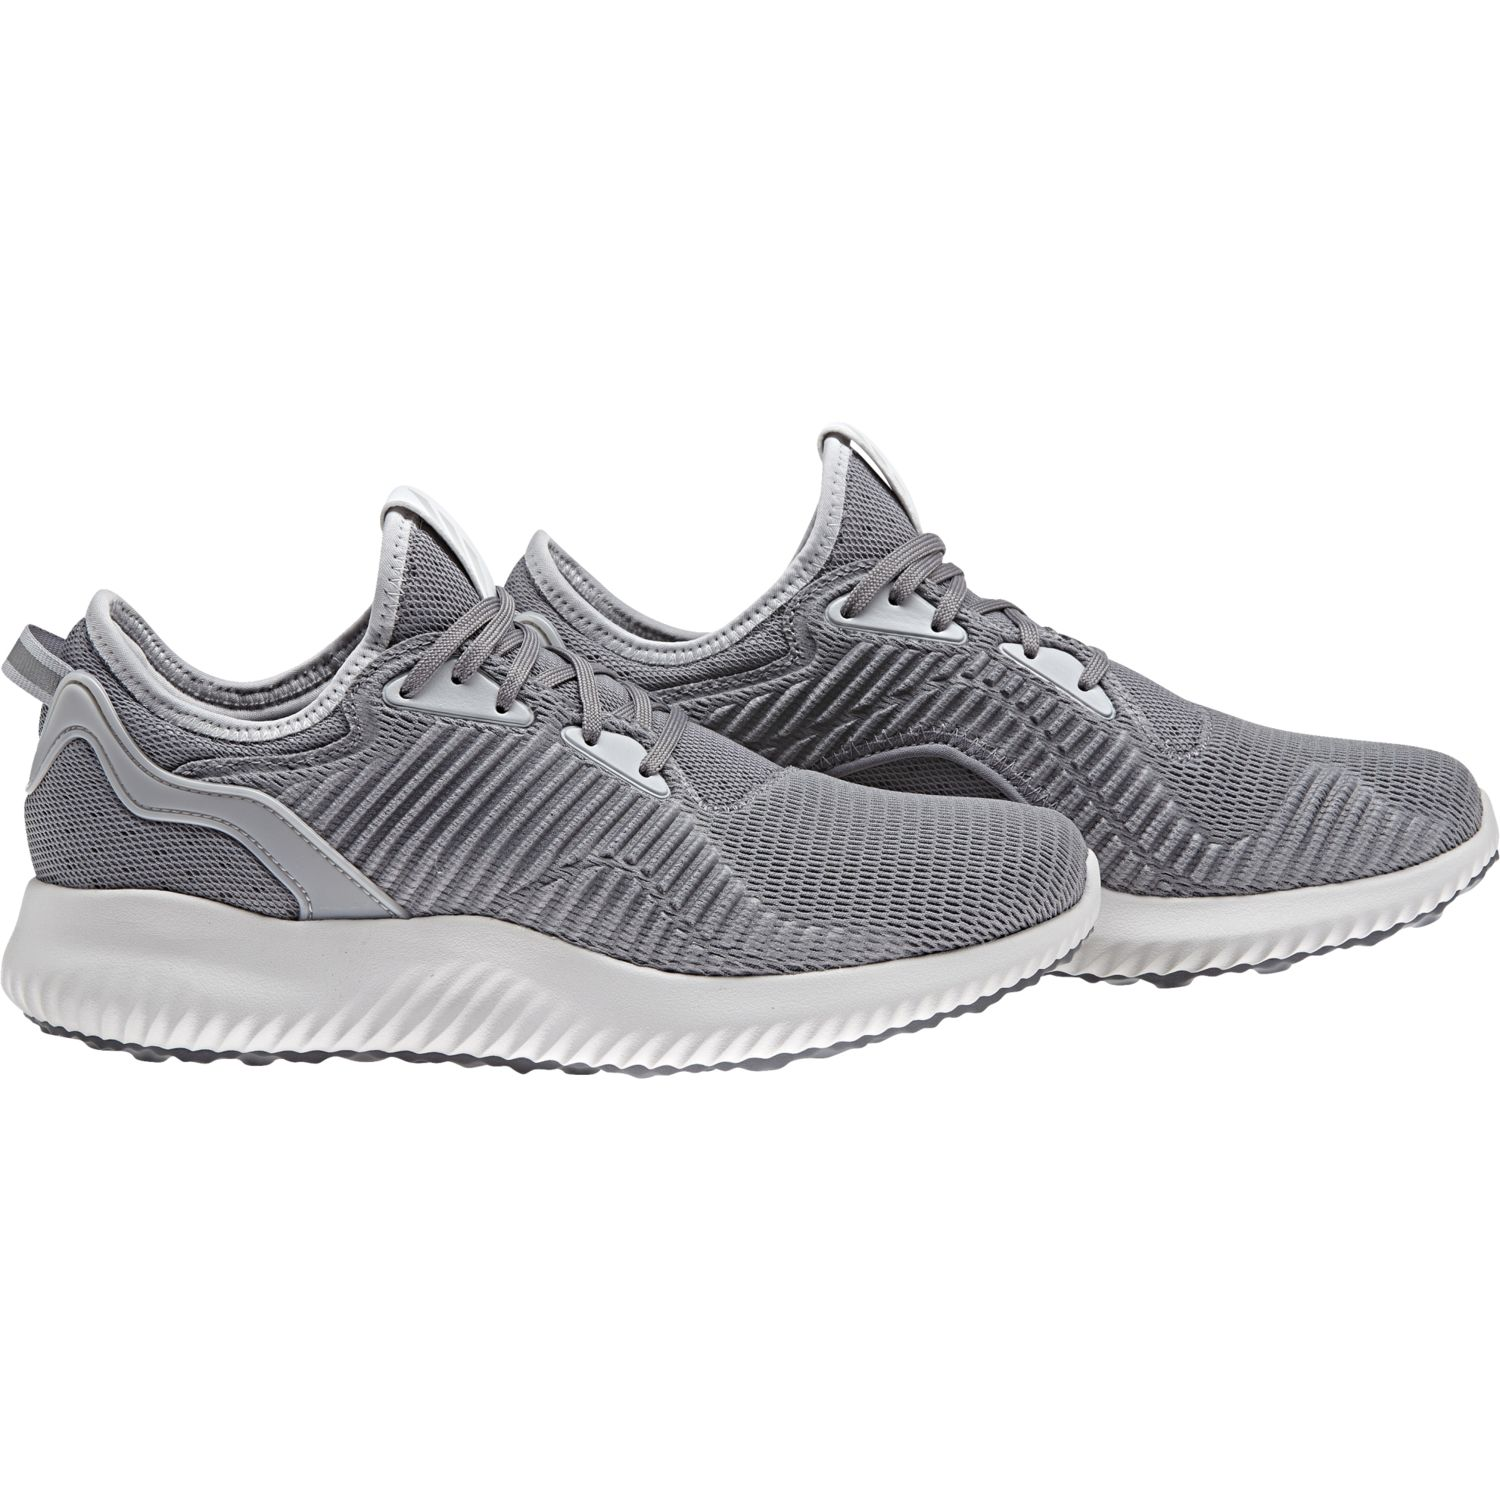 Adidas - Chaussures femme alphabounce Lux gris/gris clair/blanc - 37 1/3 - pas cher Achat / Vente Chaussures running